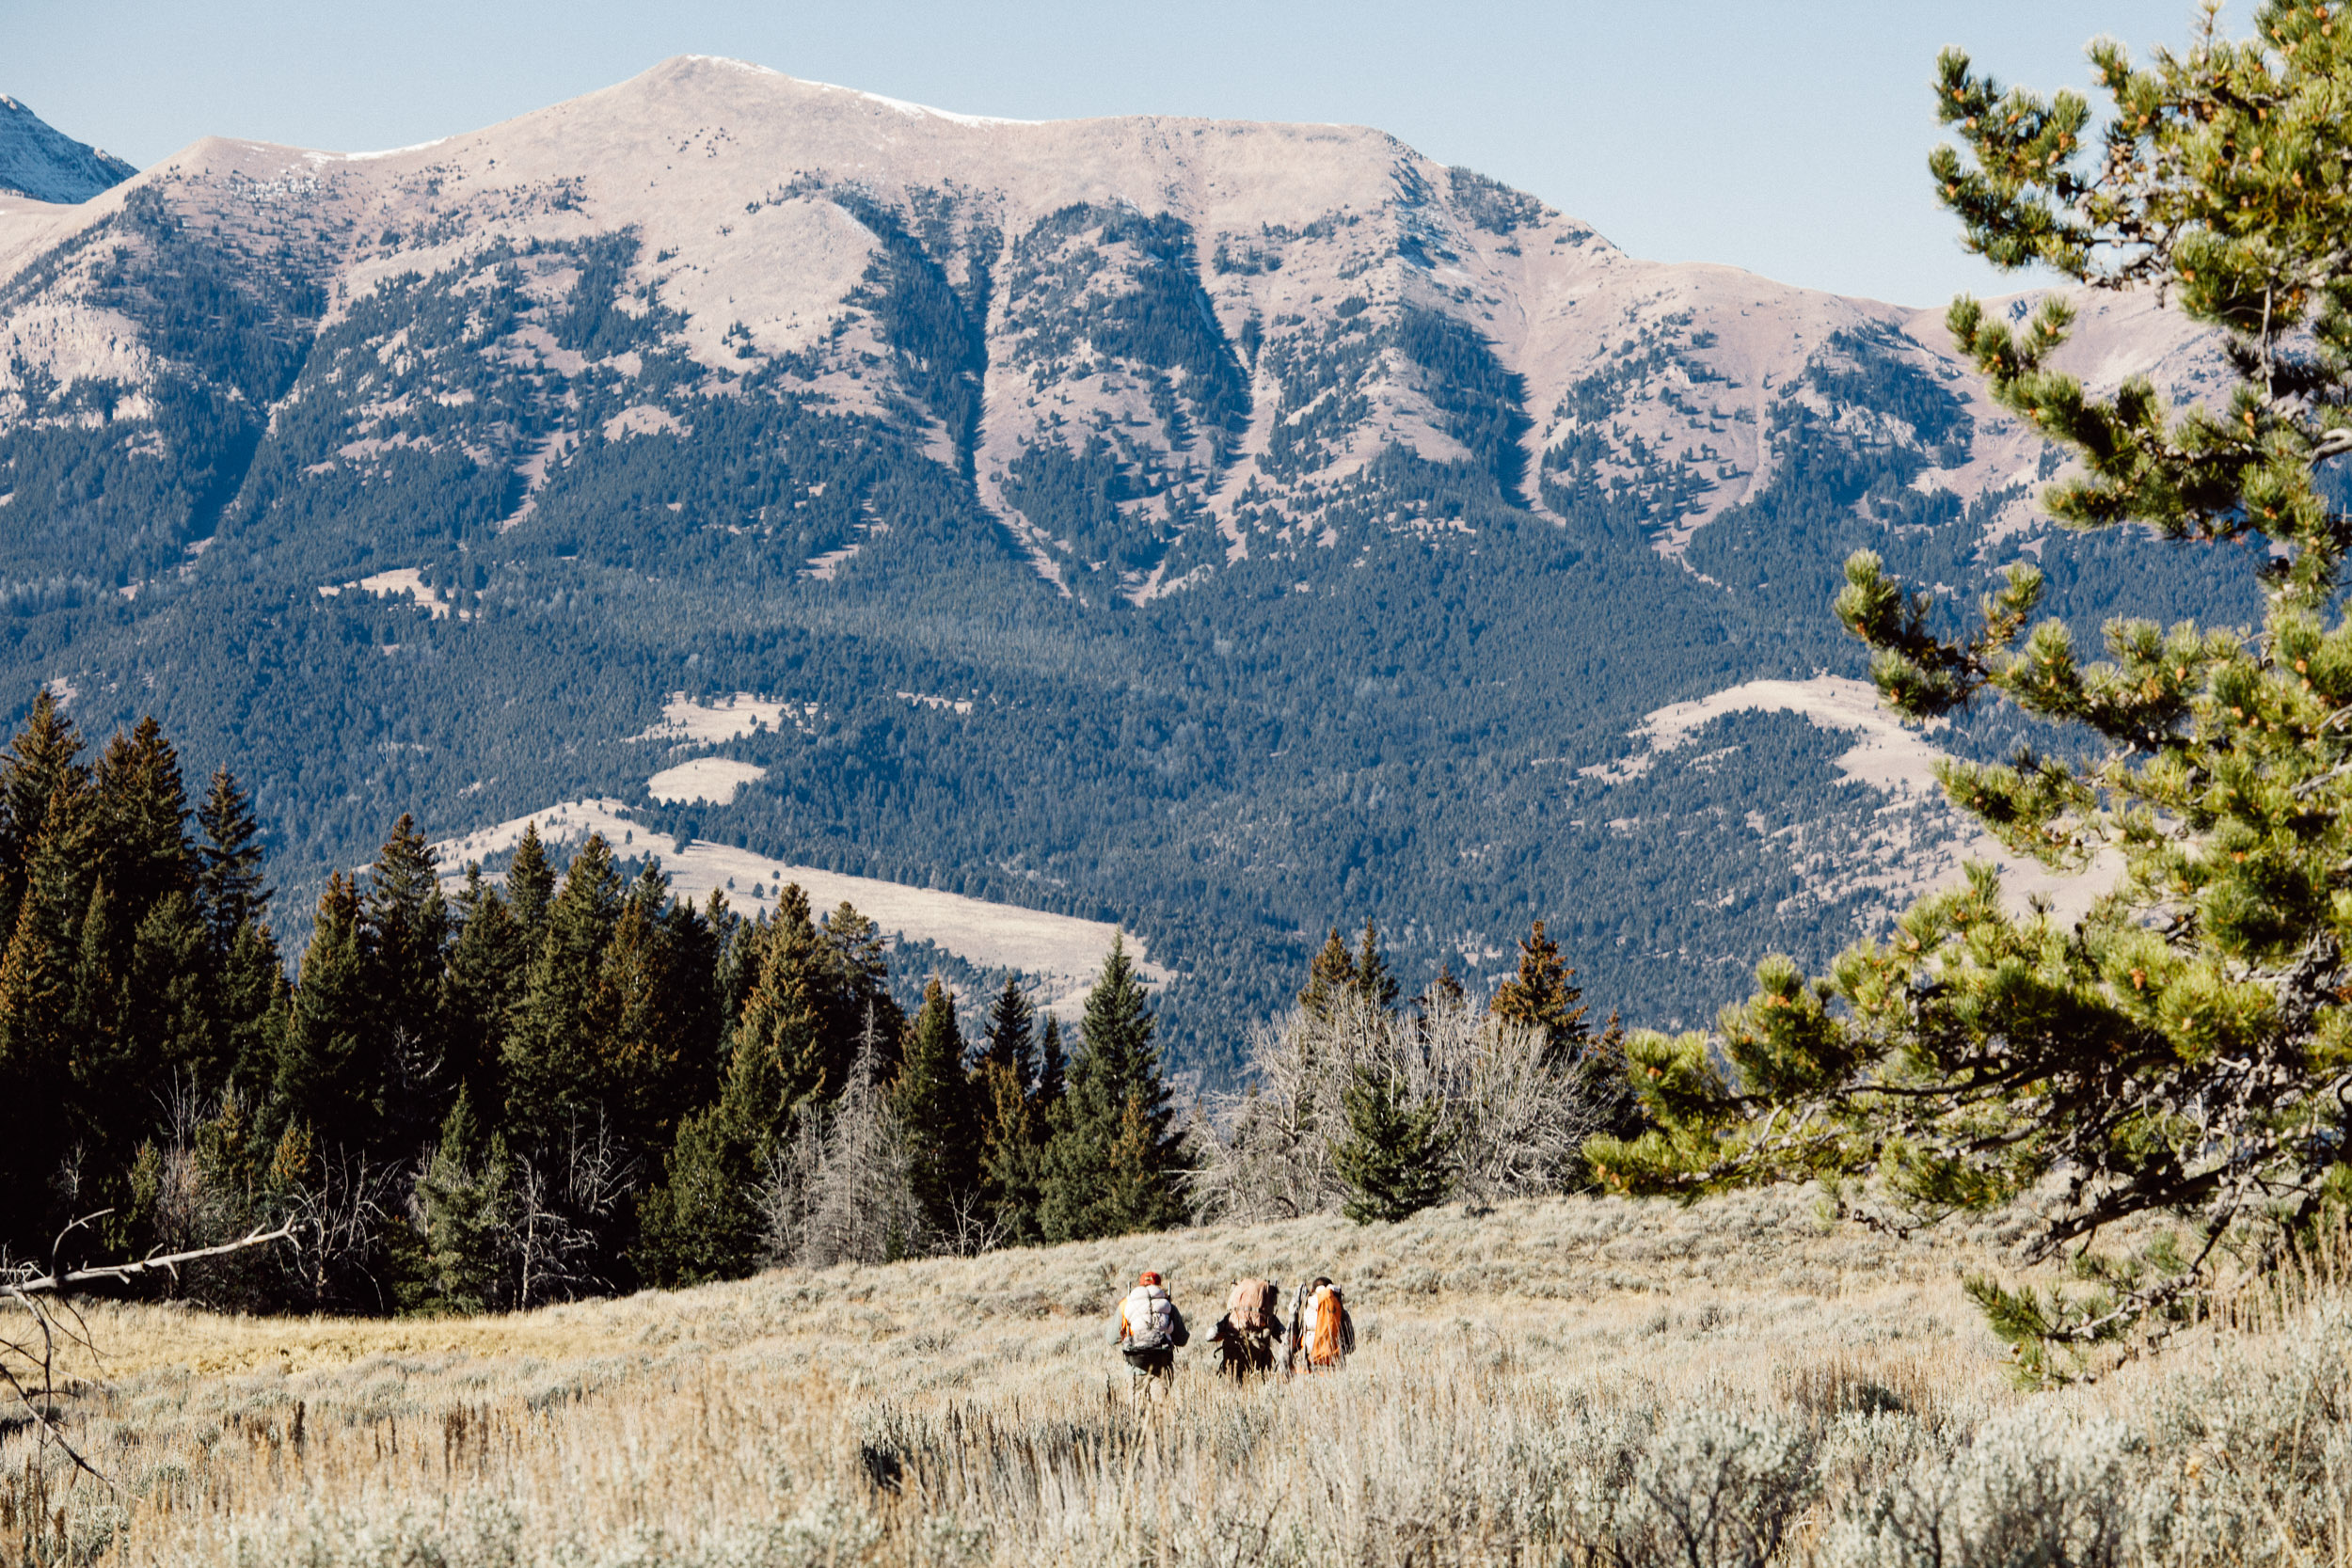 Hunters packing out an elk from the Rocky Mountains in Montana